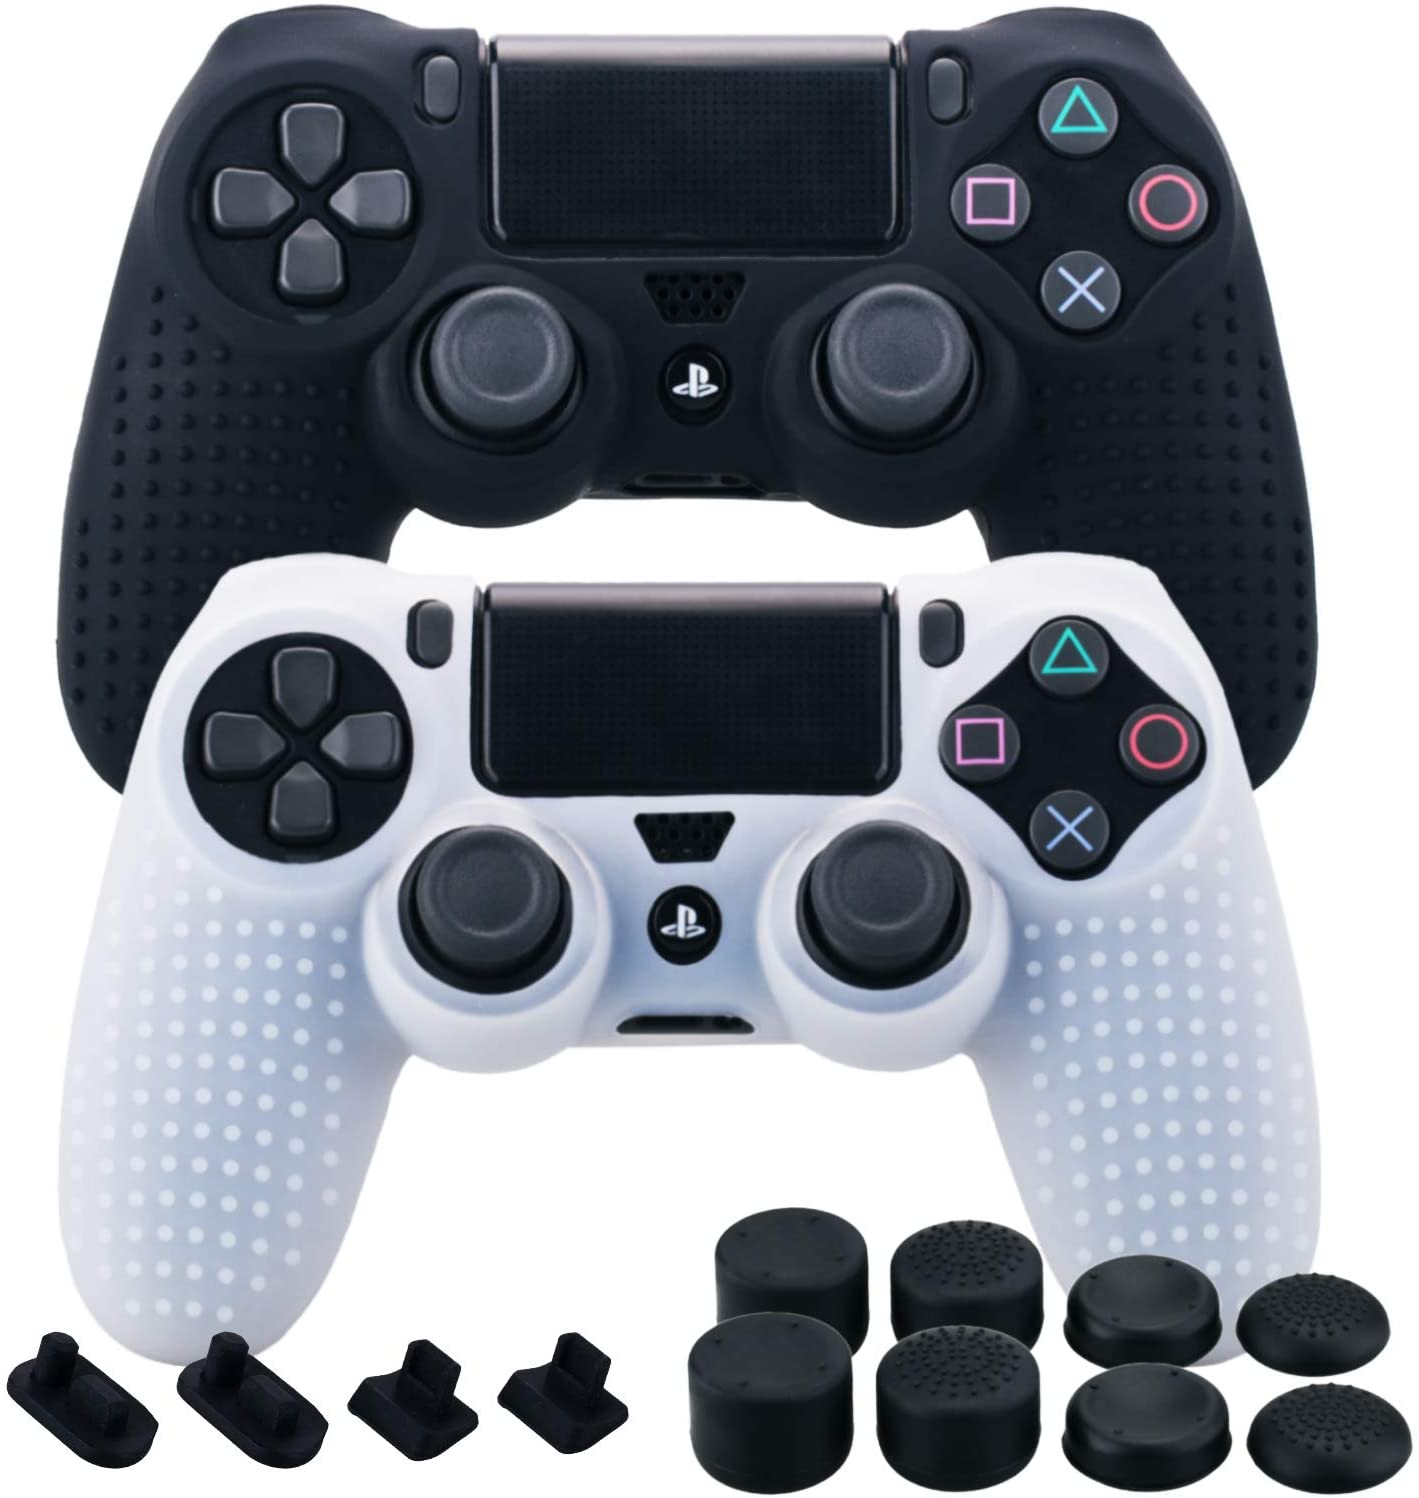 MXRC Silicone Rubber Cover Skin Case X 2 Anti-Slip Studded Dots Customize for PS4/SLIM/PRO Controller x 1(Black & Clear) + FPS PRO Stick Cover Thumb Grips x 8 + Dustproof Plug x 4